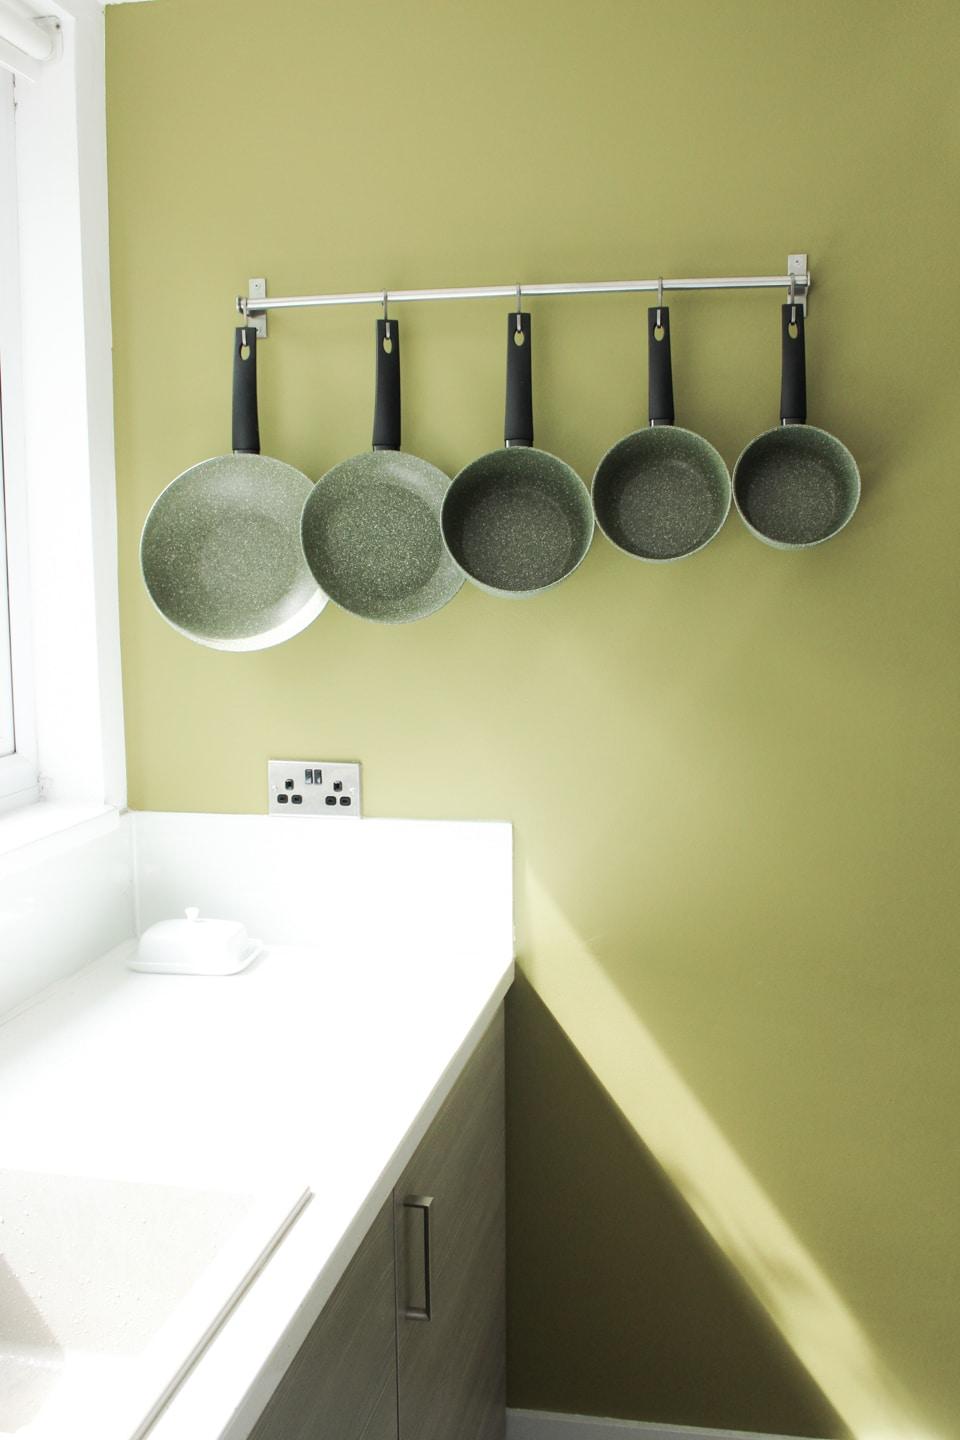 Pots and Pans in Prestige Eco Cookware Range